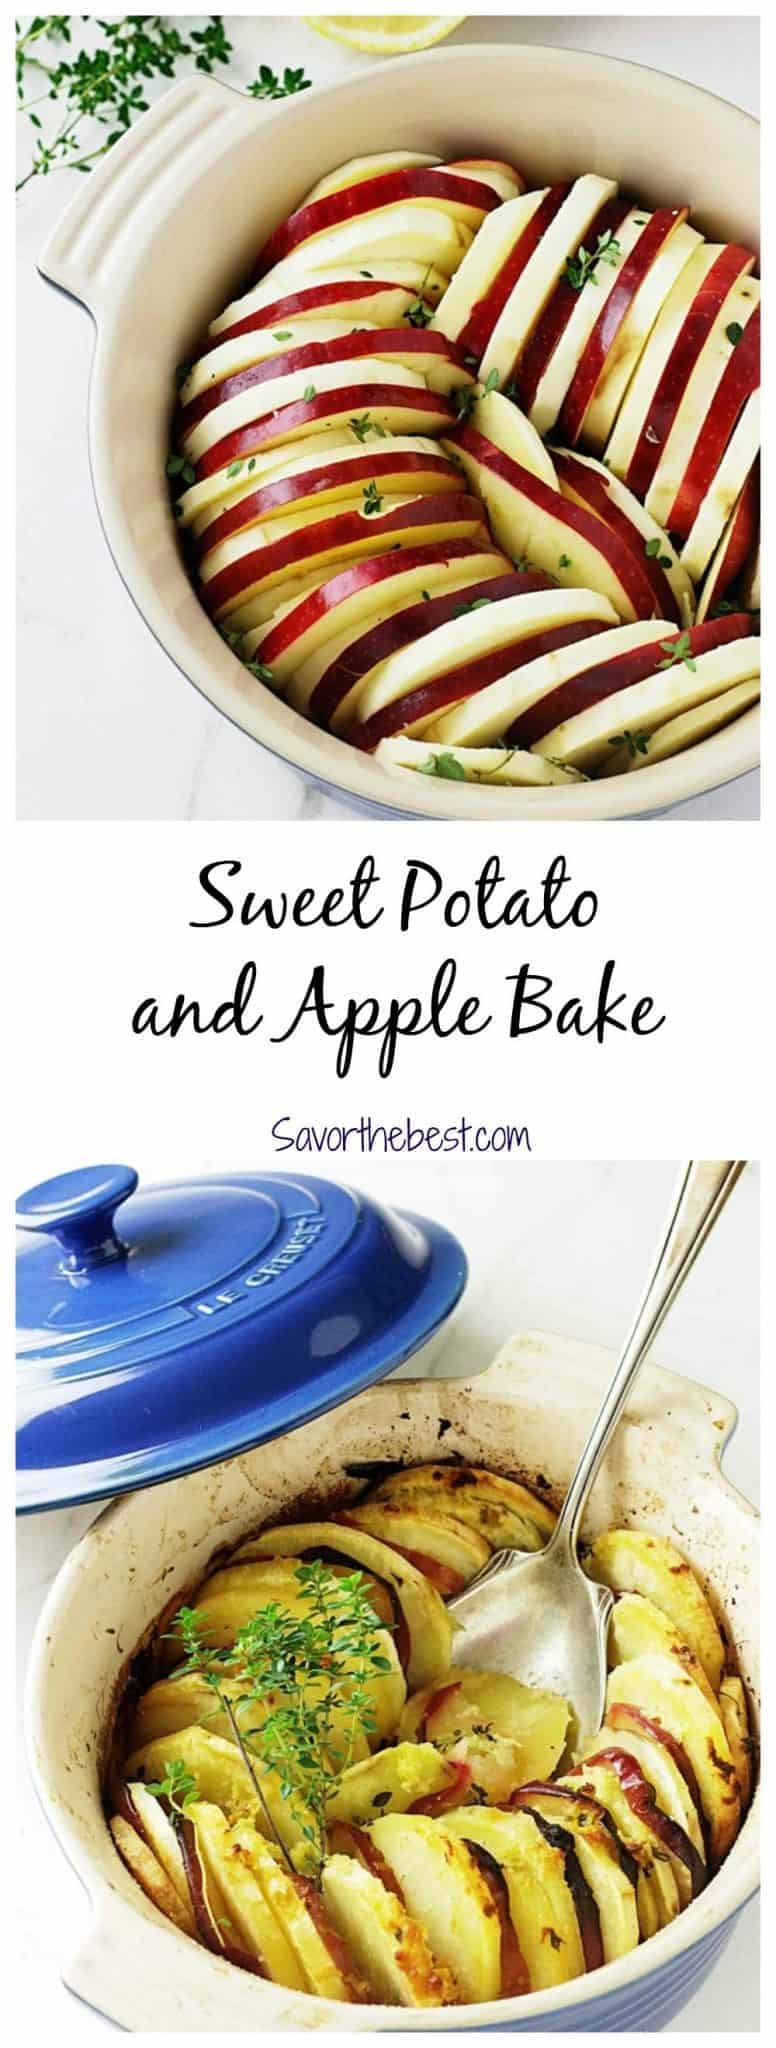 sweet potato and apple bake